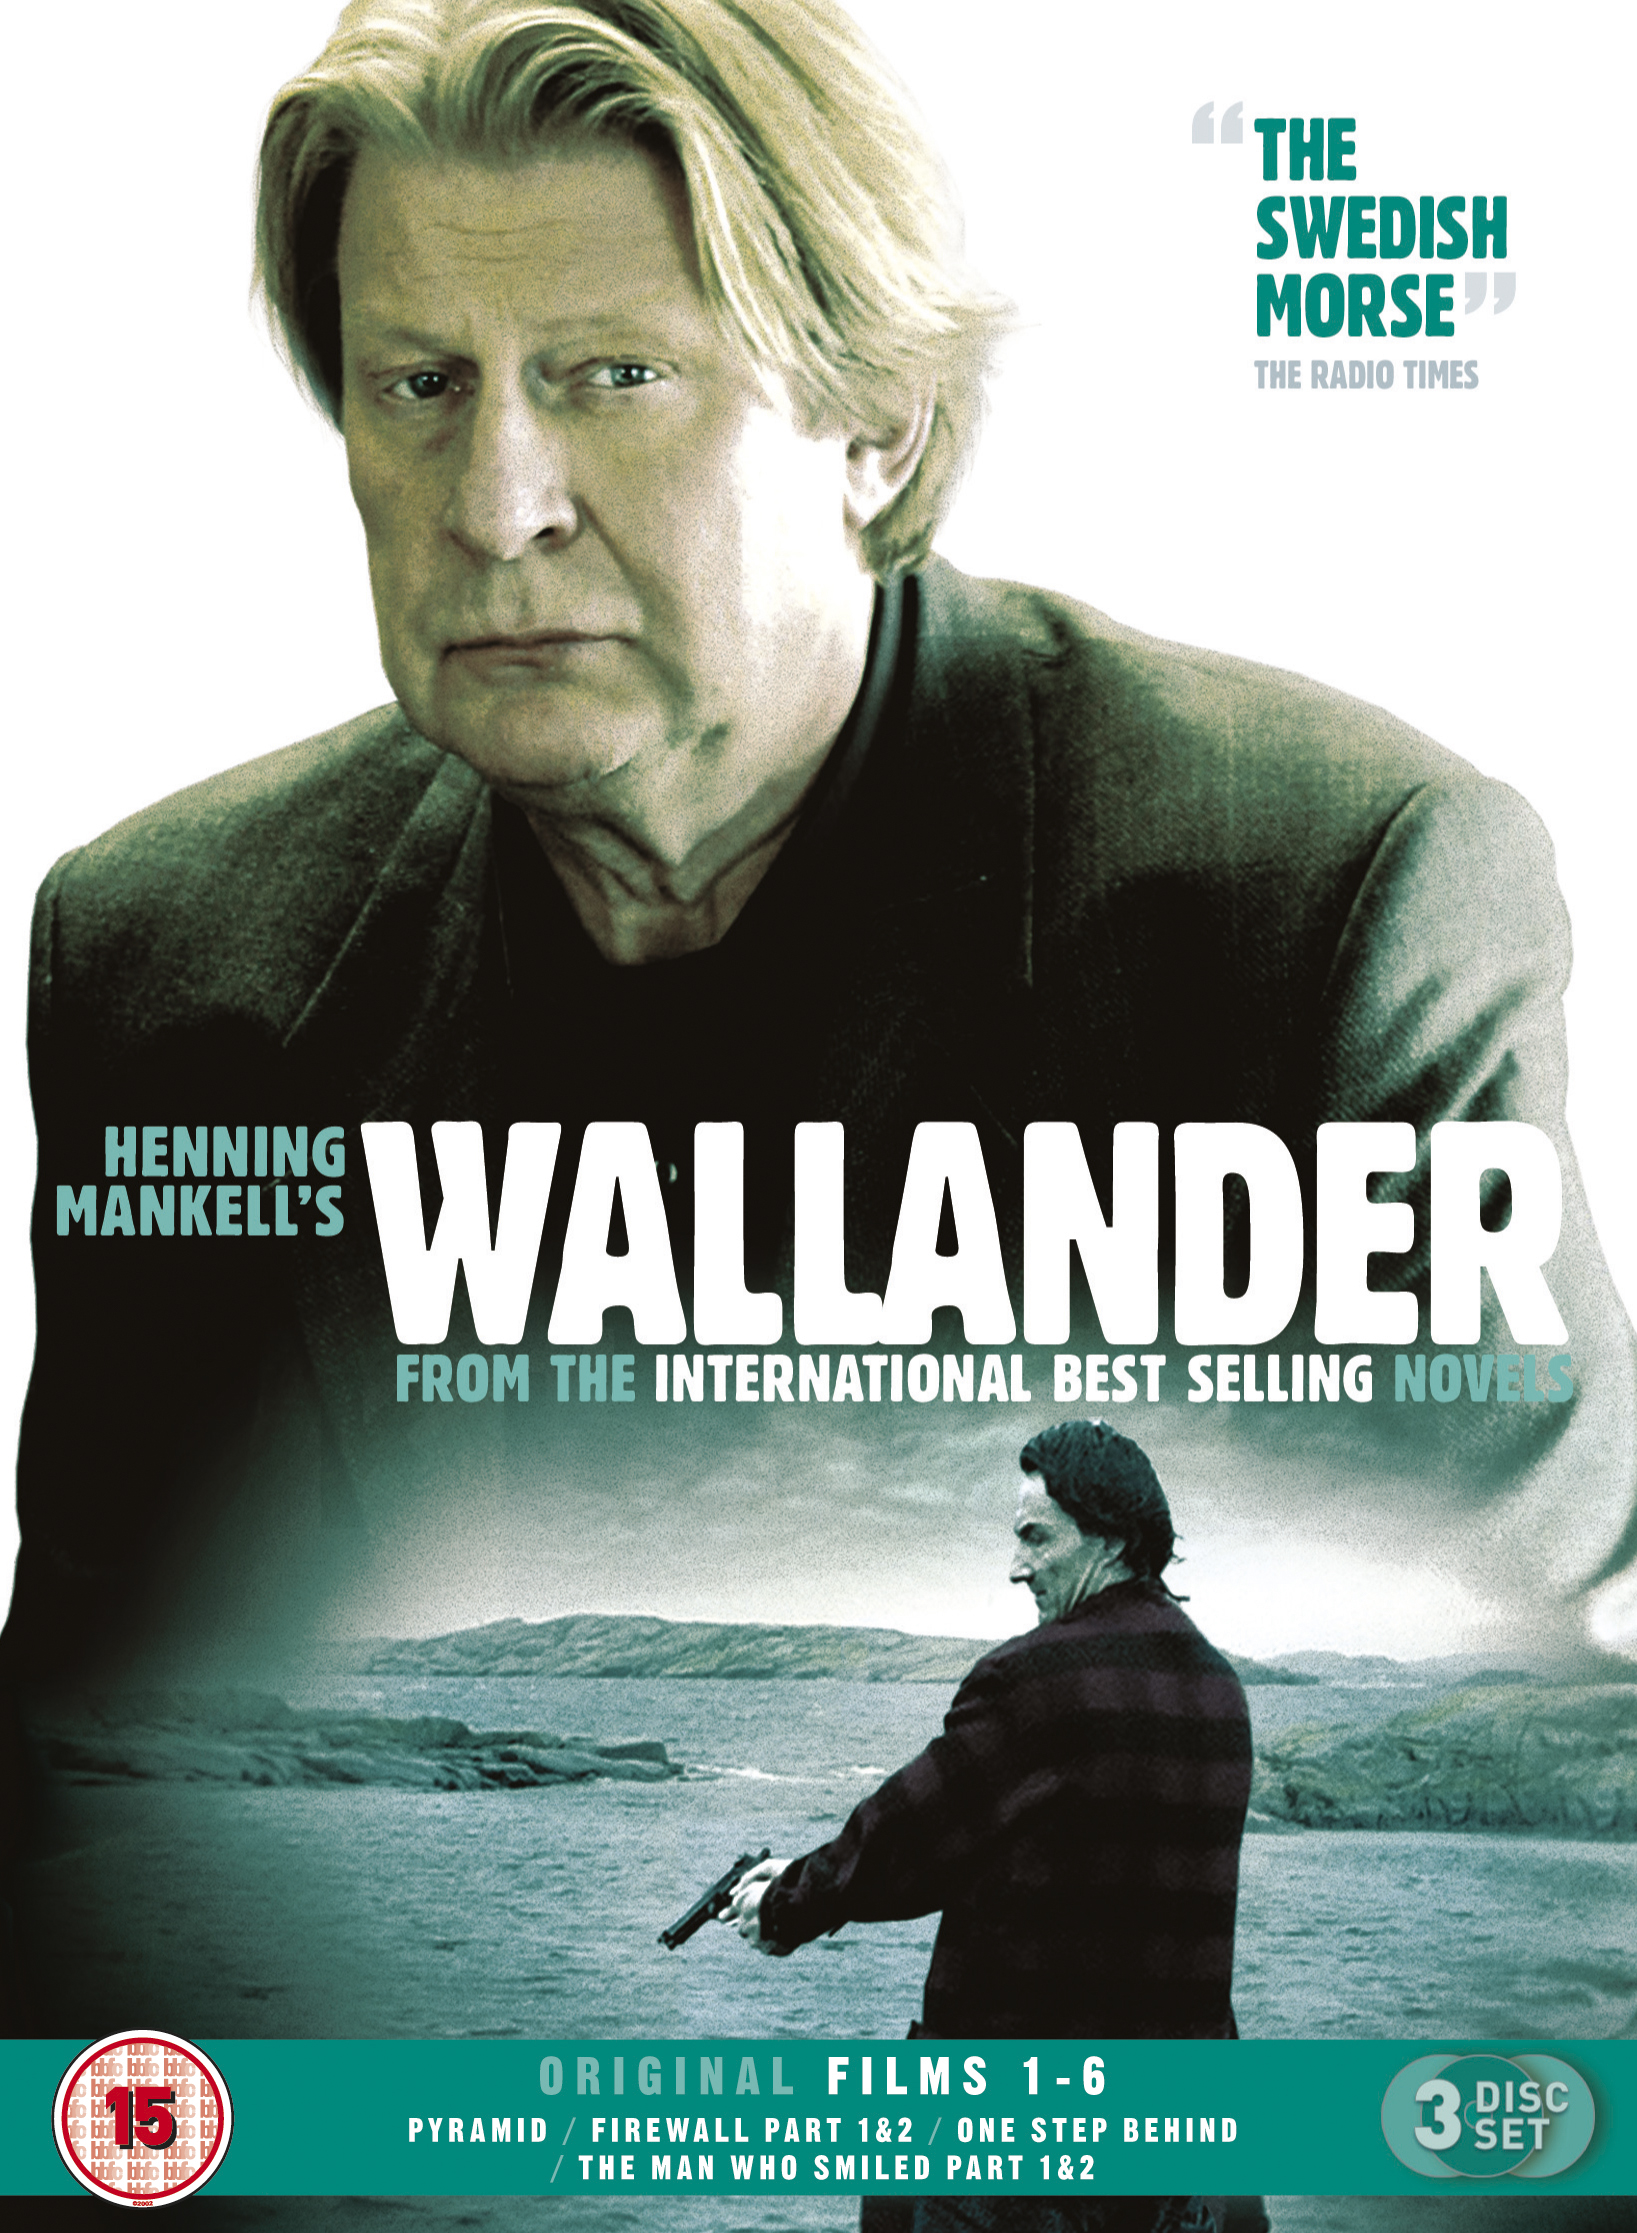 The Fix Magazine | Introducing: Wallander – The Swedish Morse